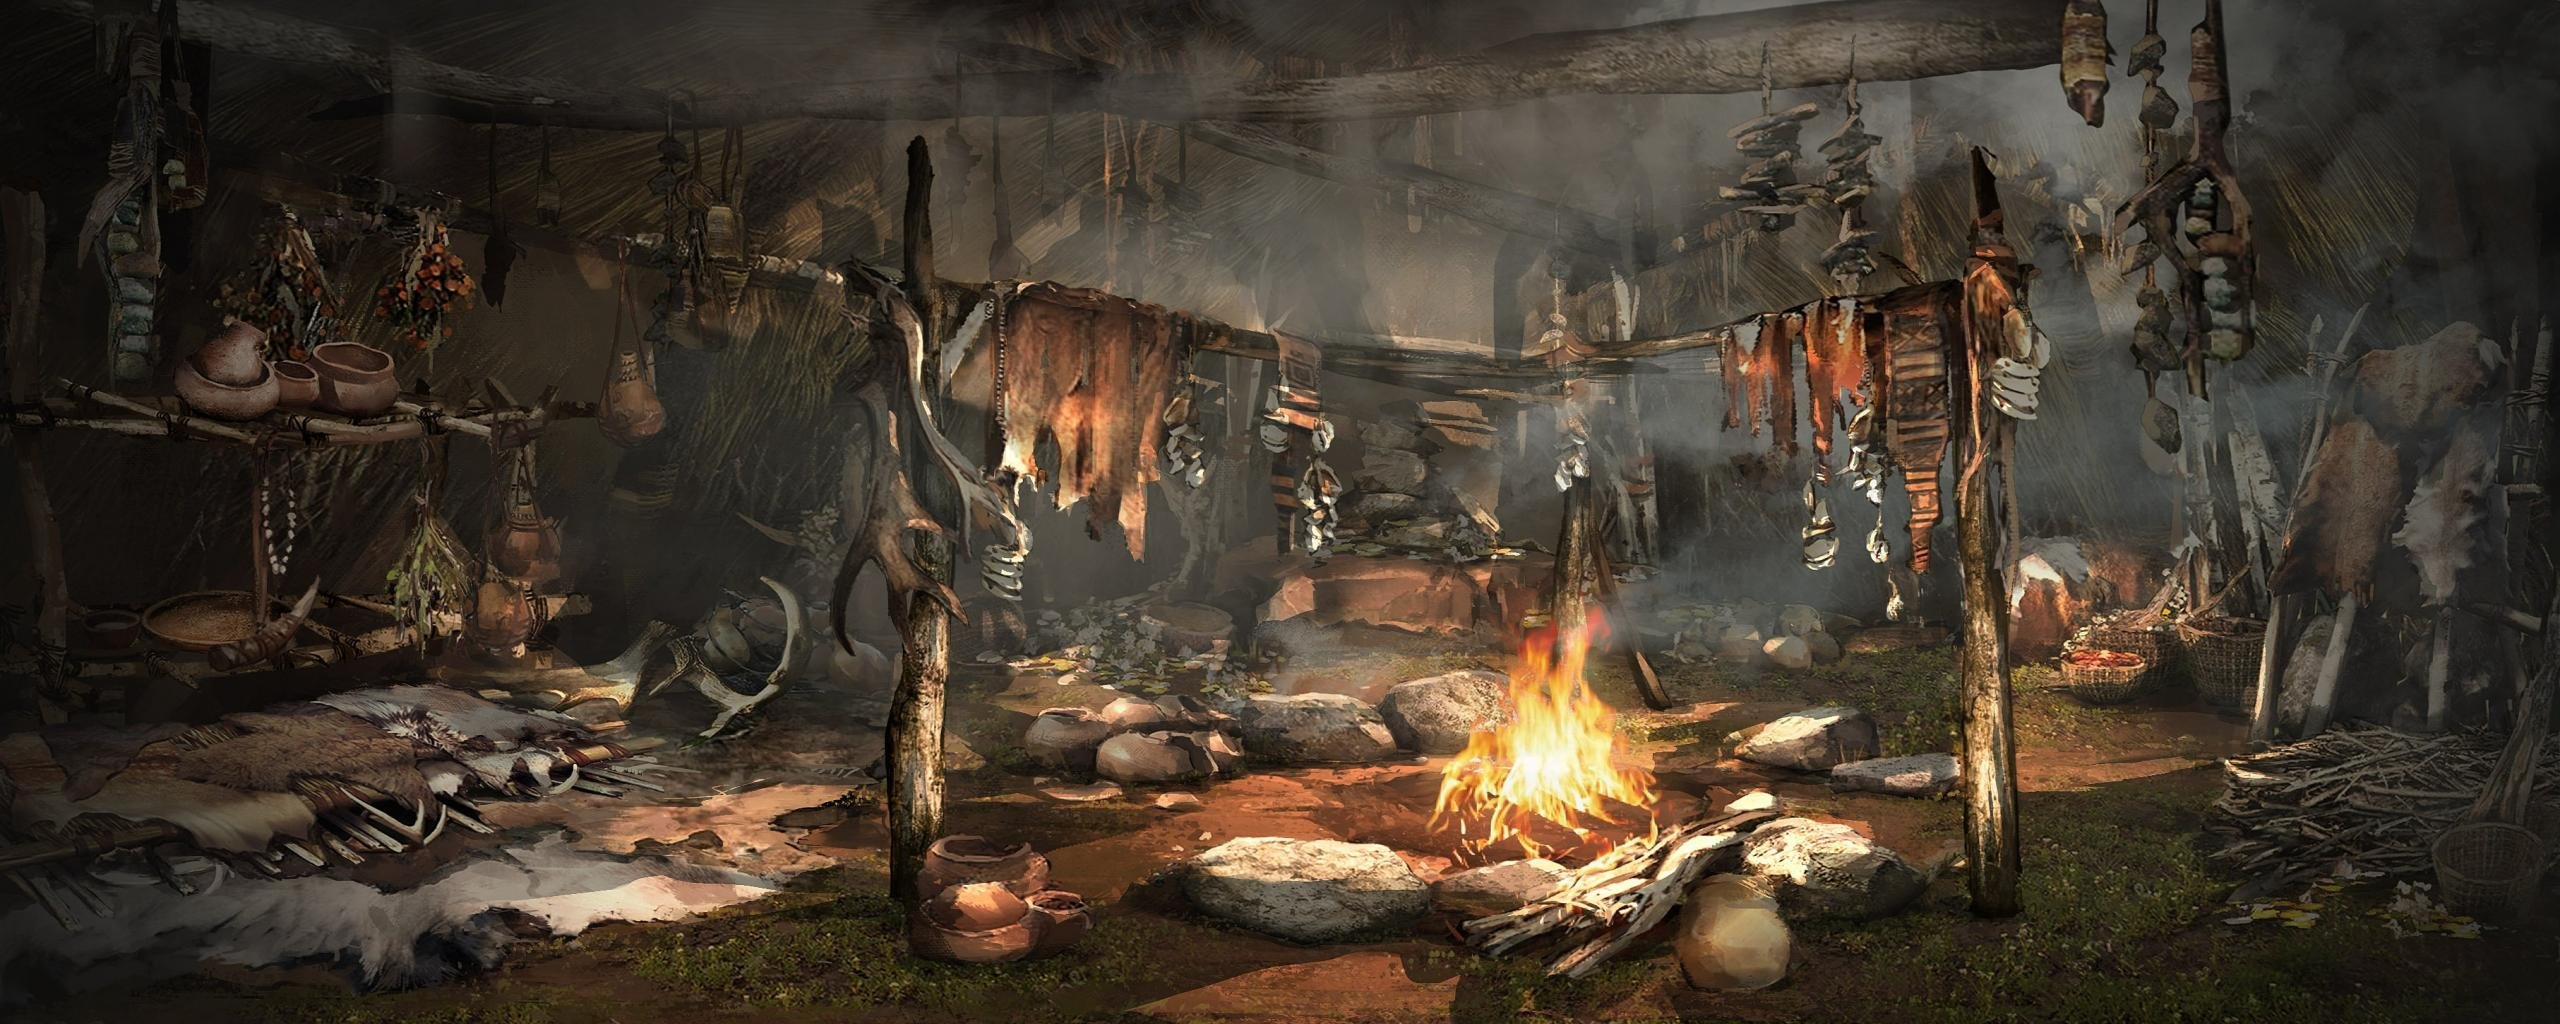 Dual Monitor Far Cry Primal Wallpapers Hd Backgrounds